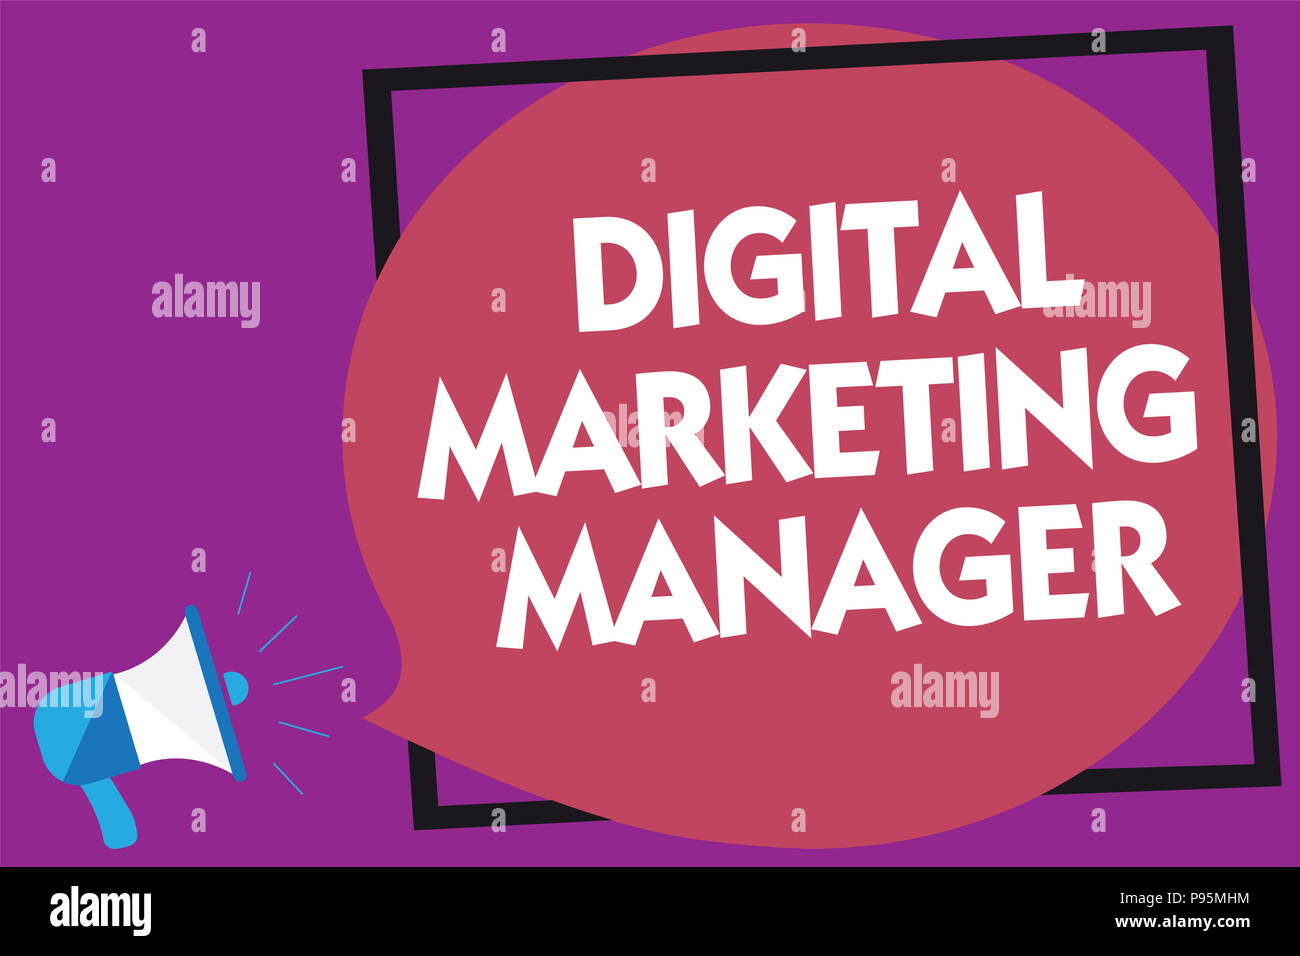 Text sign showing Digital Marketing Manager. Conceptual photo optimized for posting in online boards or careers Megaphone loudspeaker loud screaming p - Stock Image